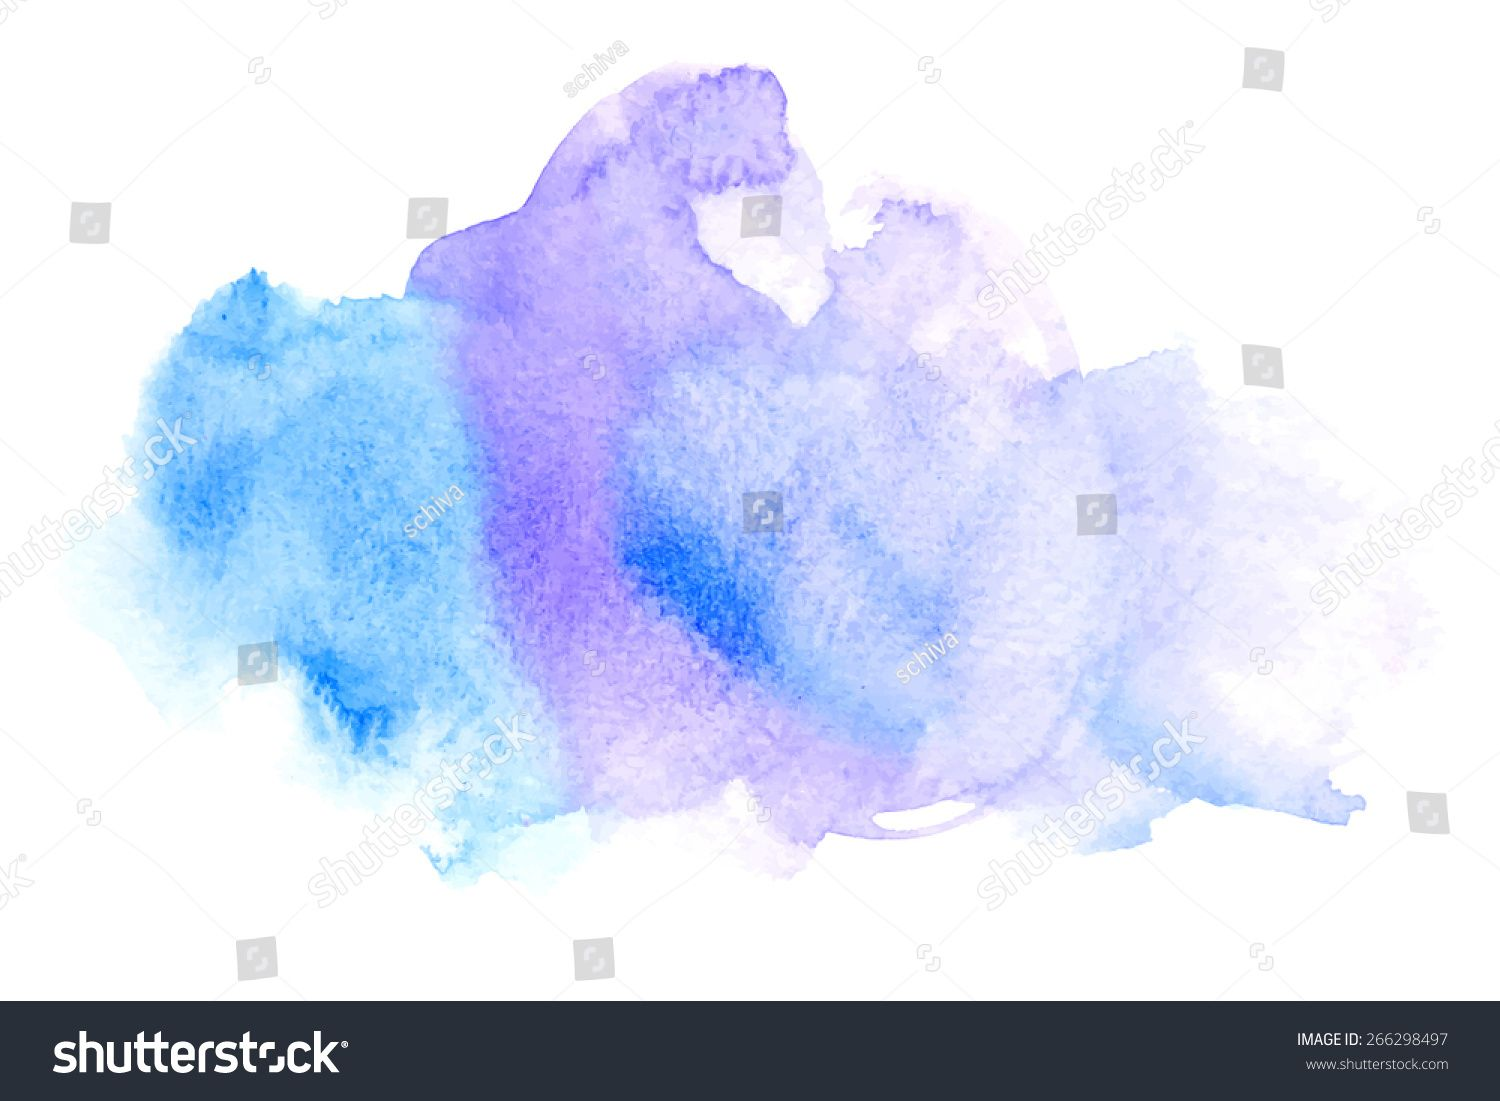 Vector Rectangular Blue Watercolor Drop Abstract Art Hand Paint